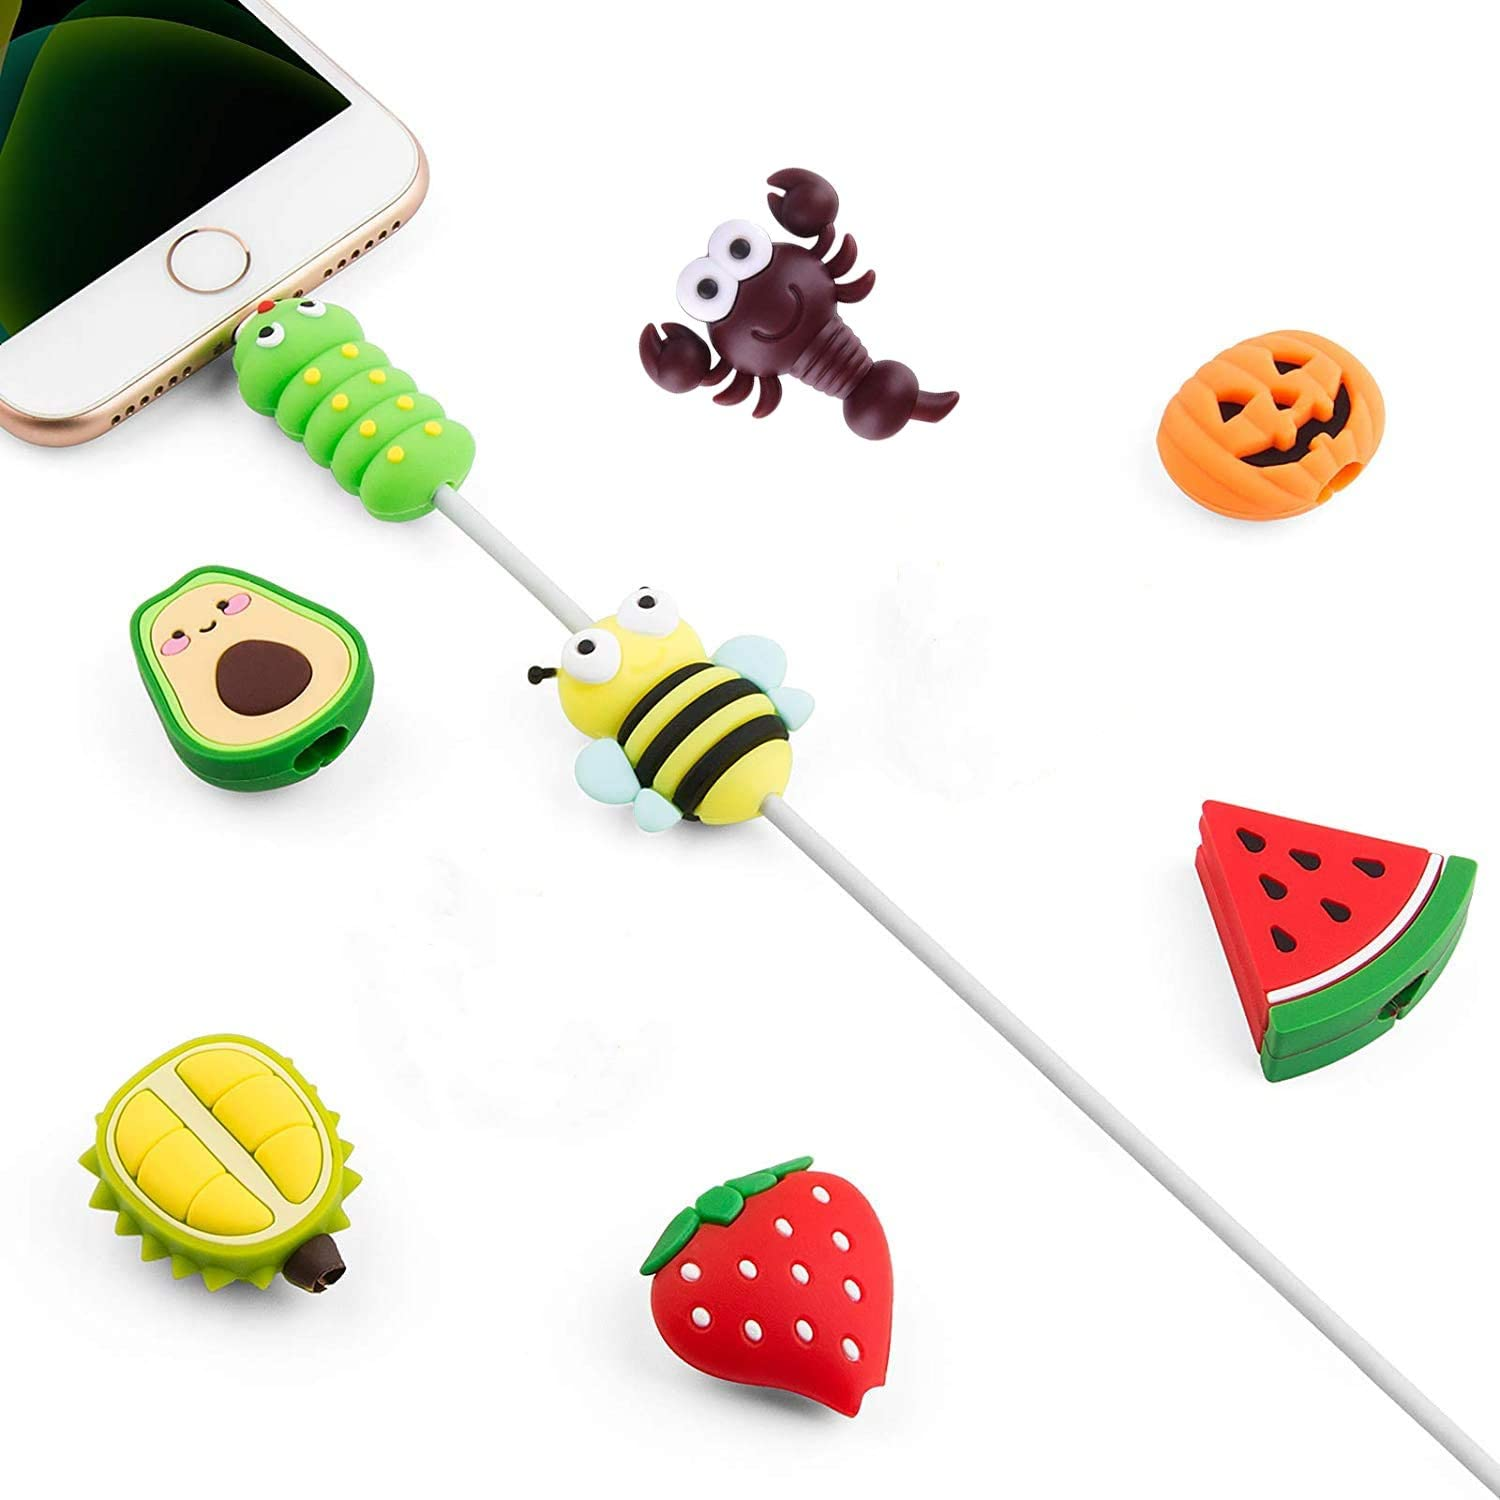 Cute Cable Protector for iPhone iPad Charger, 8 Pack Animal USB Cable Protector, Charging Cord Protector, Cable Chomper, Cable Saver Phone Accessory